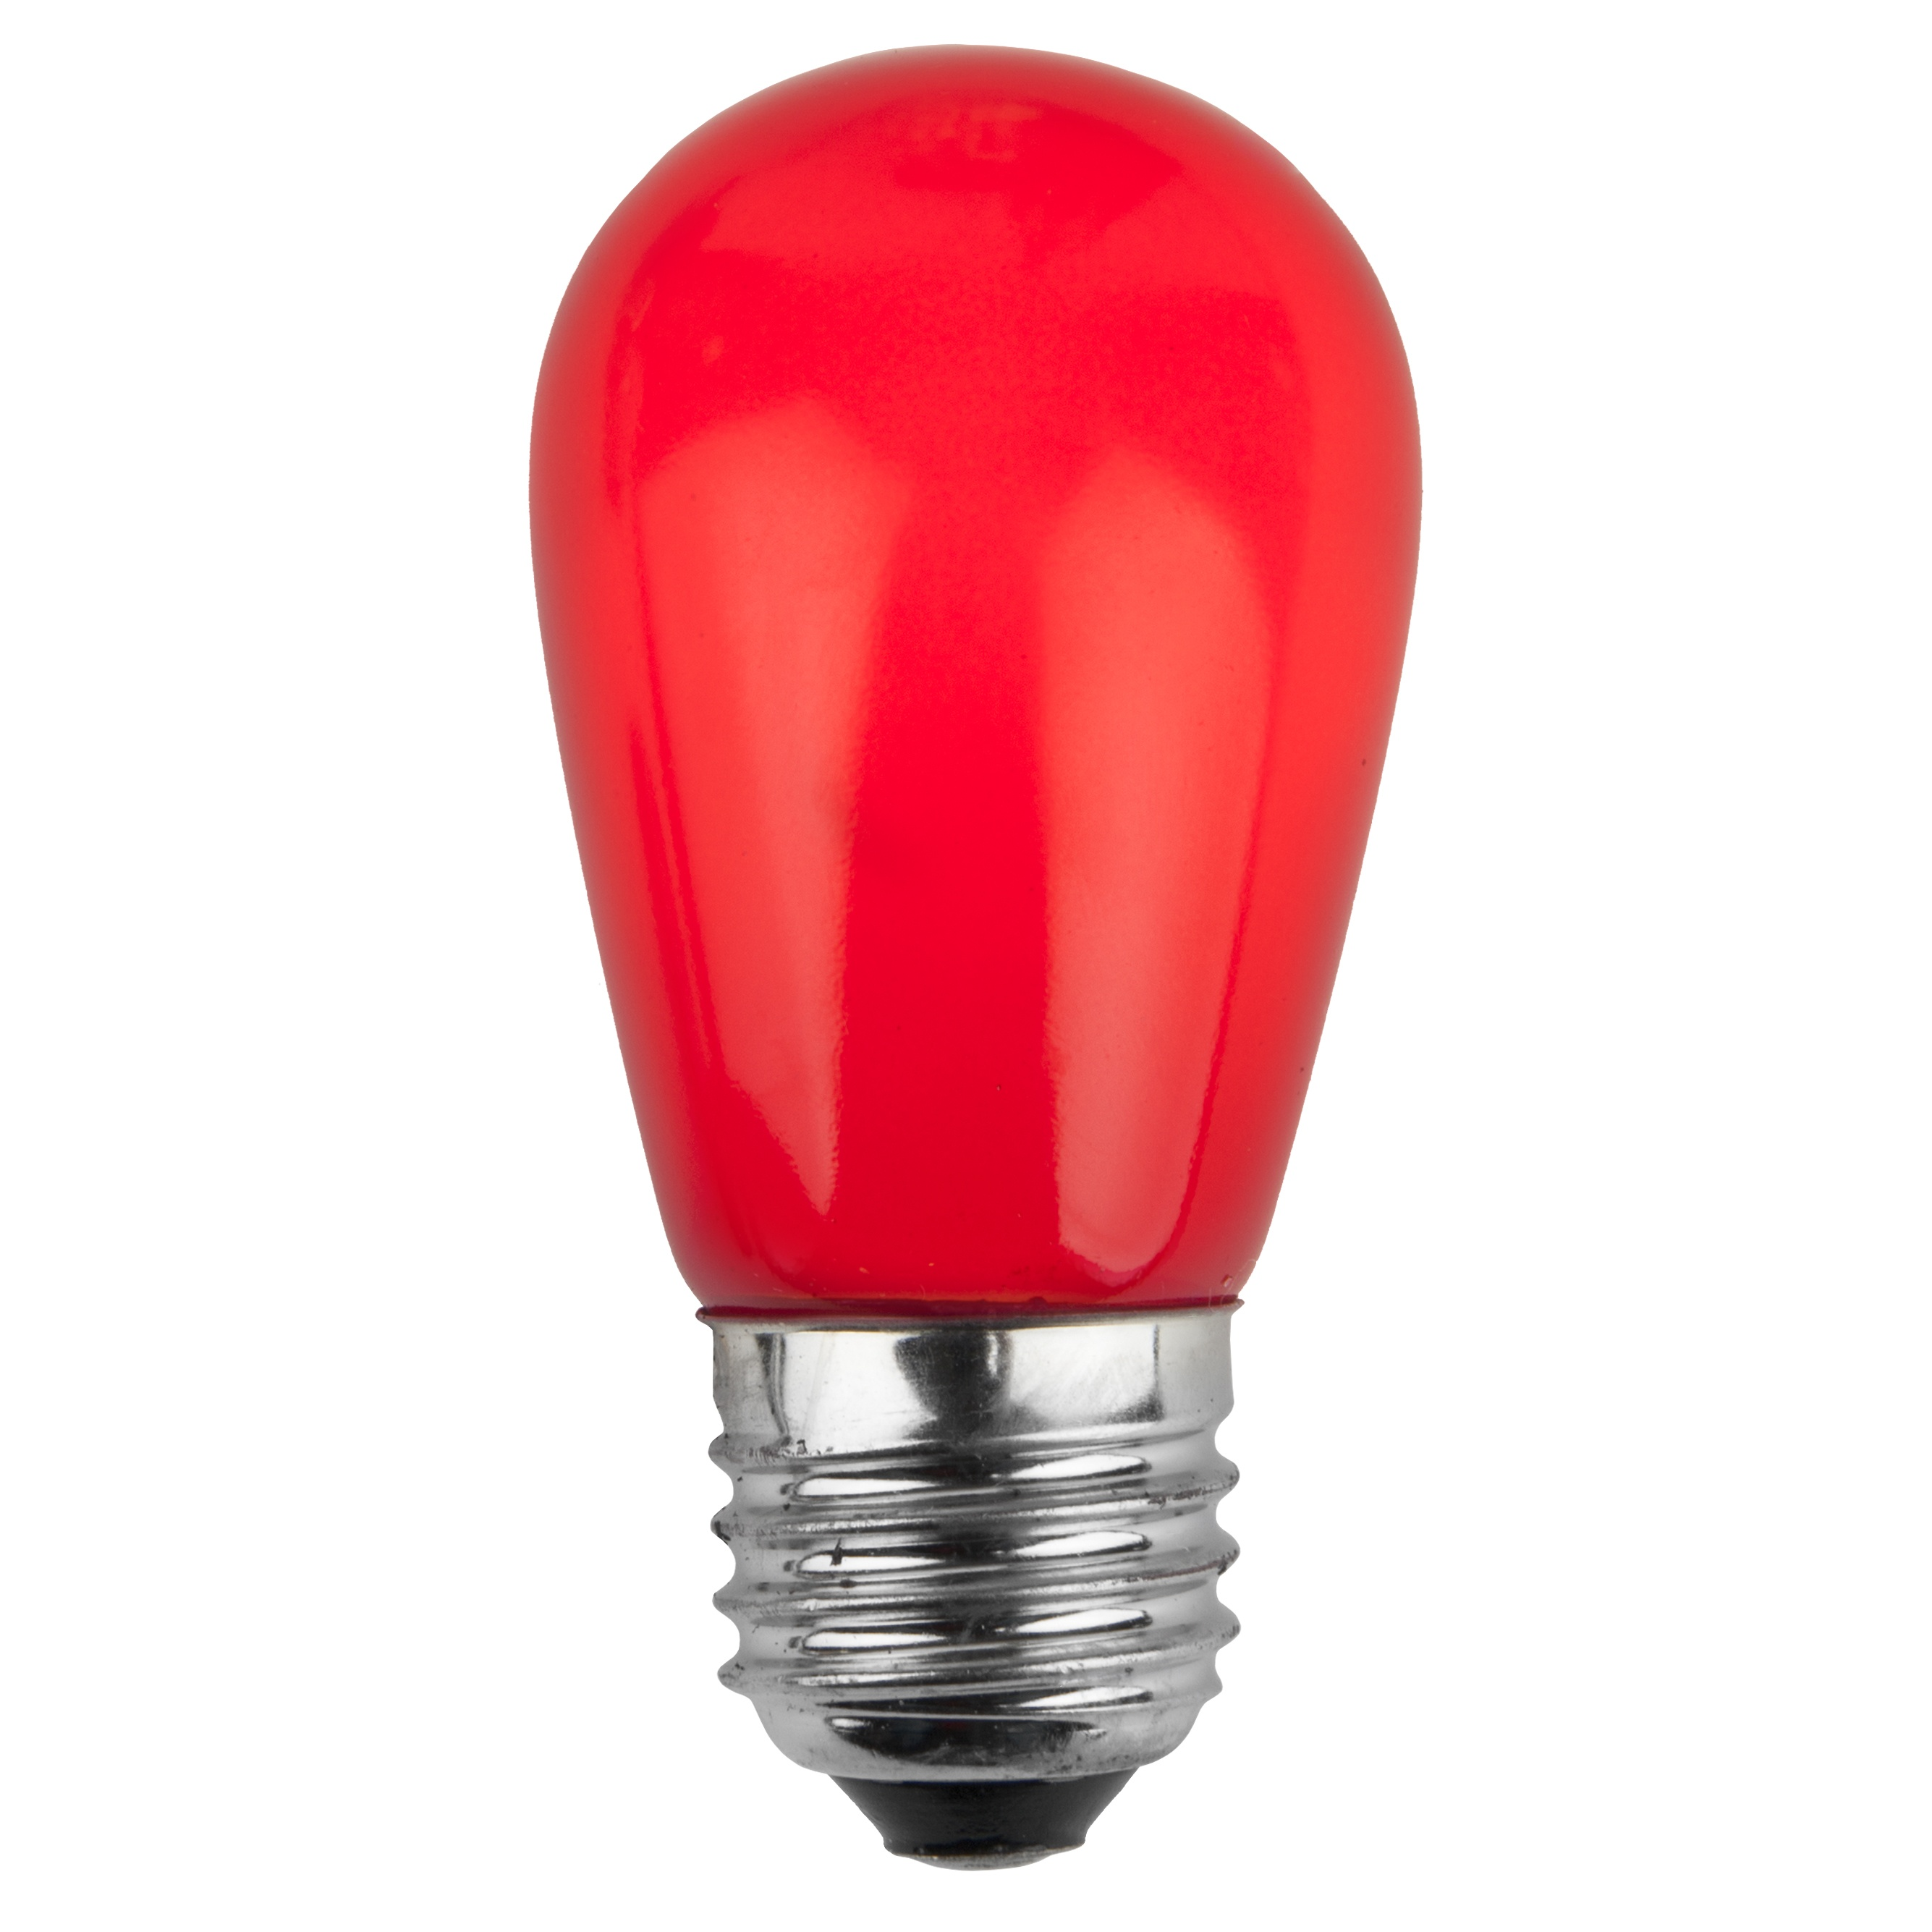 11S14 Opaque Red Incandescent Sign Lamp